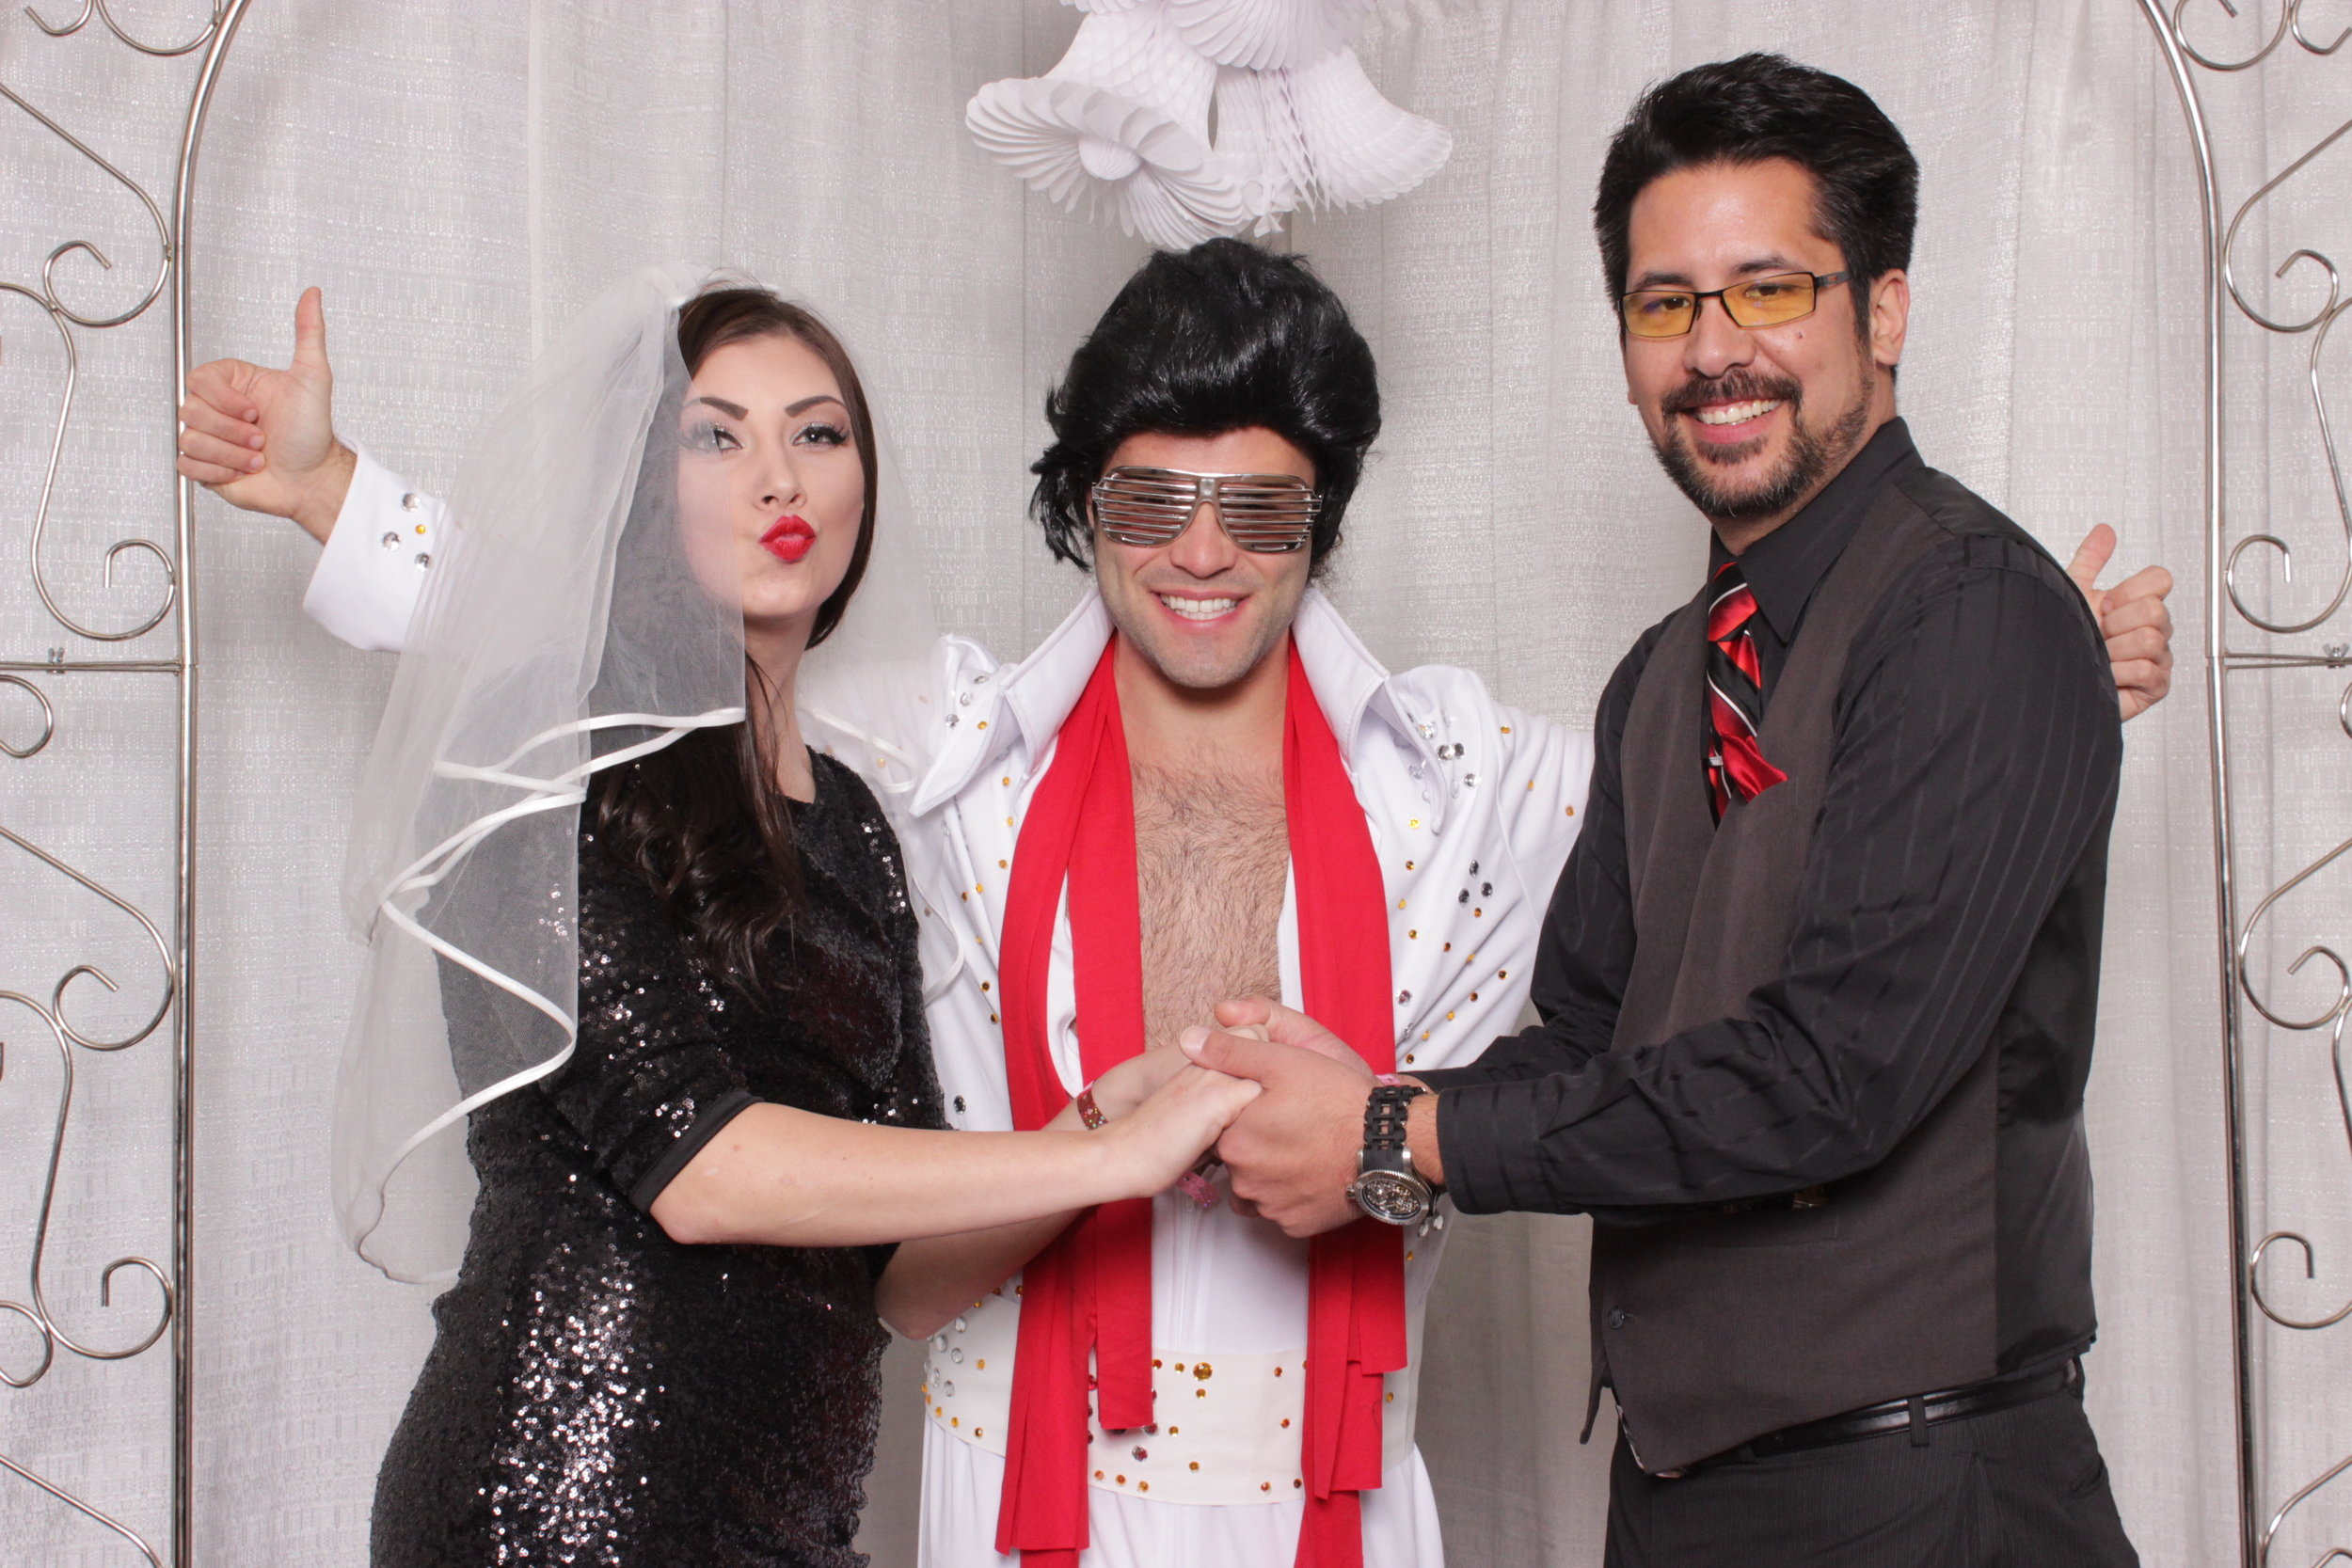 Chico-photo-booth-rental-great-for-events